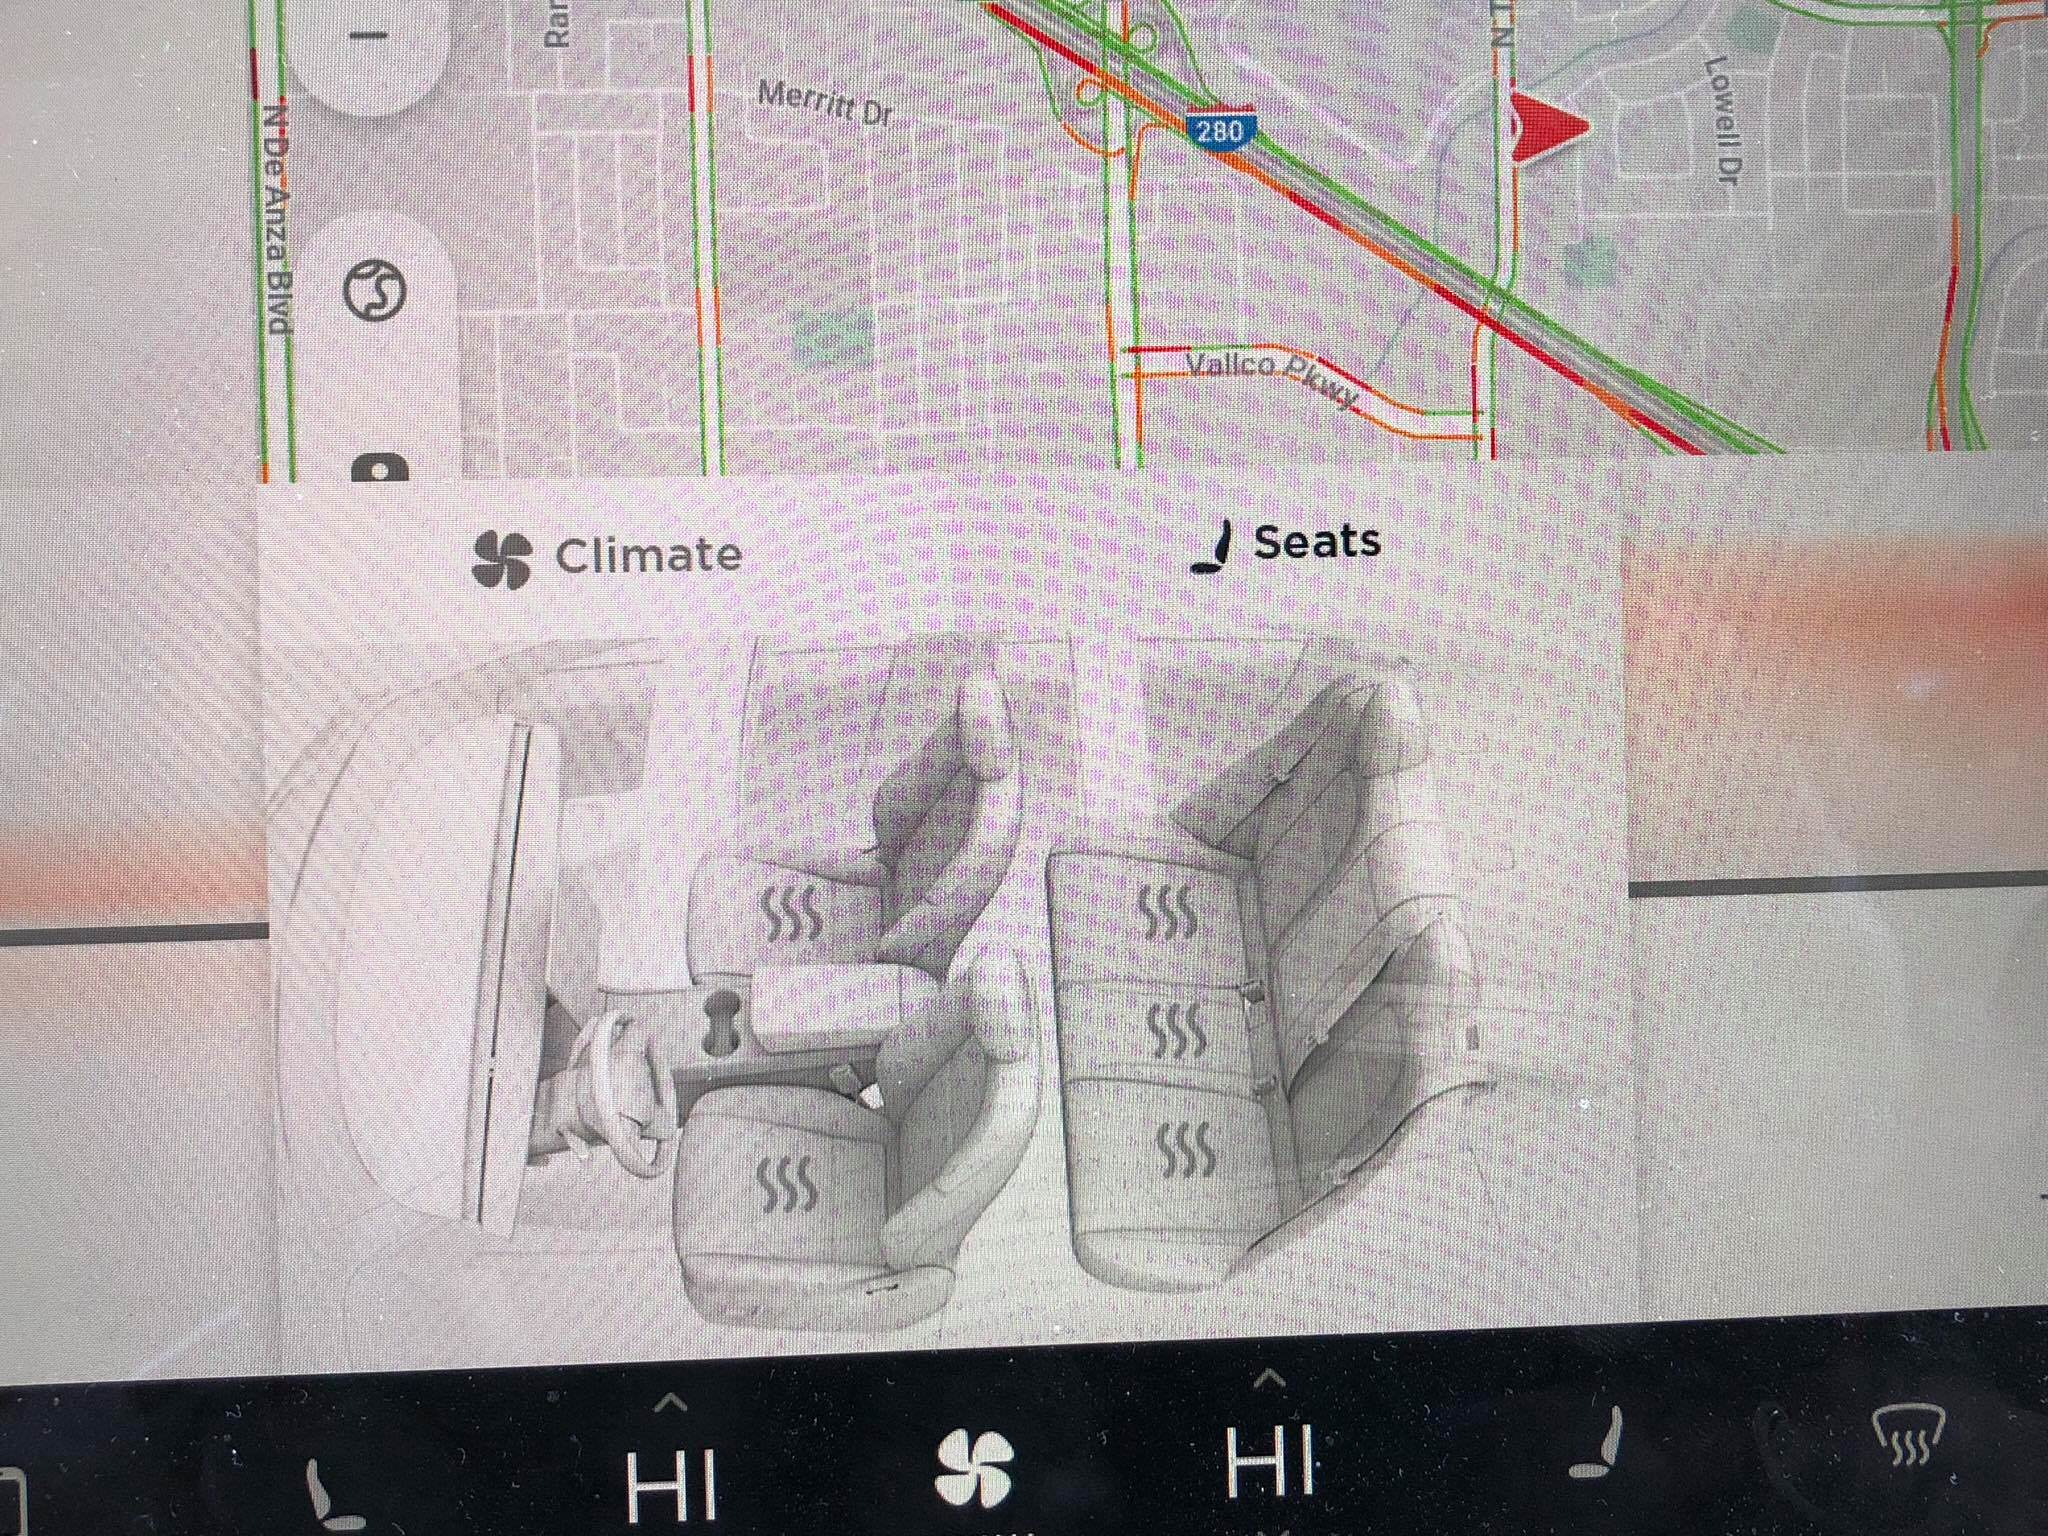 Model 3 update 2018.10.1 heated rear seats (4) [Credit: Raghuram Kamath via helicopterrun/Reddit]